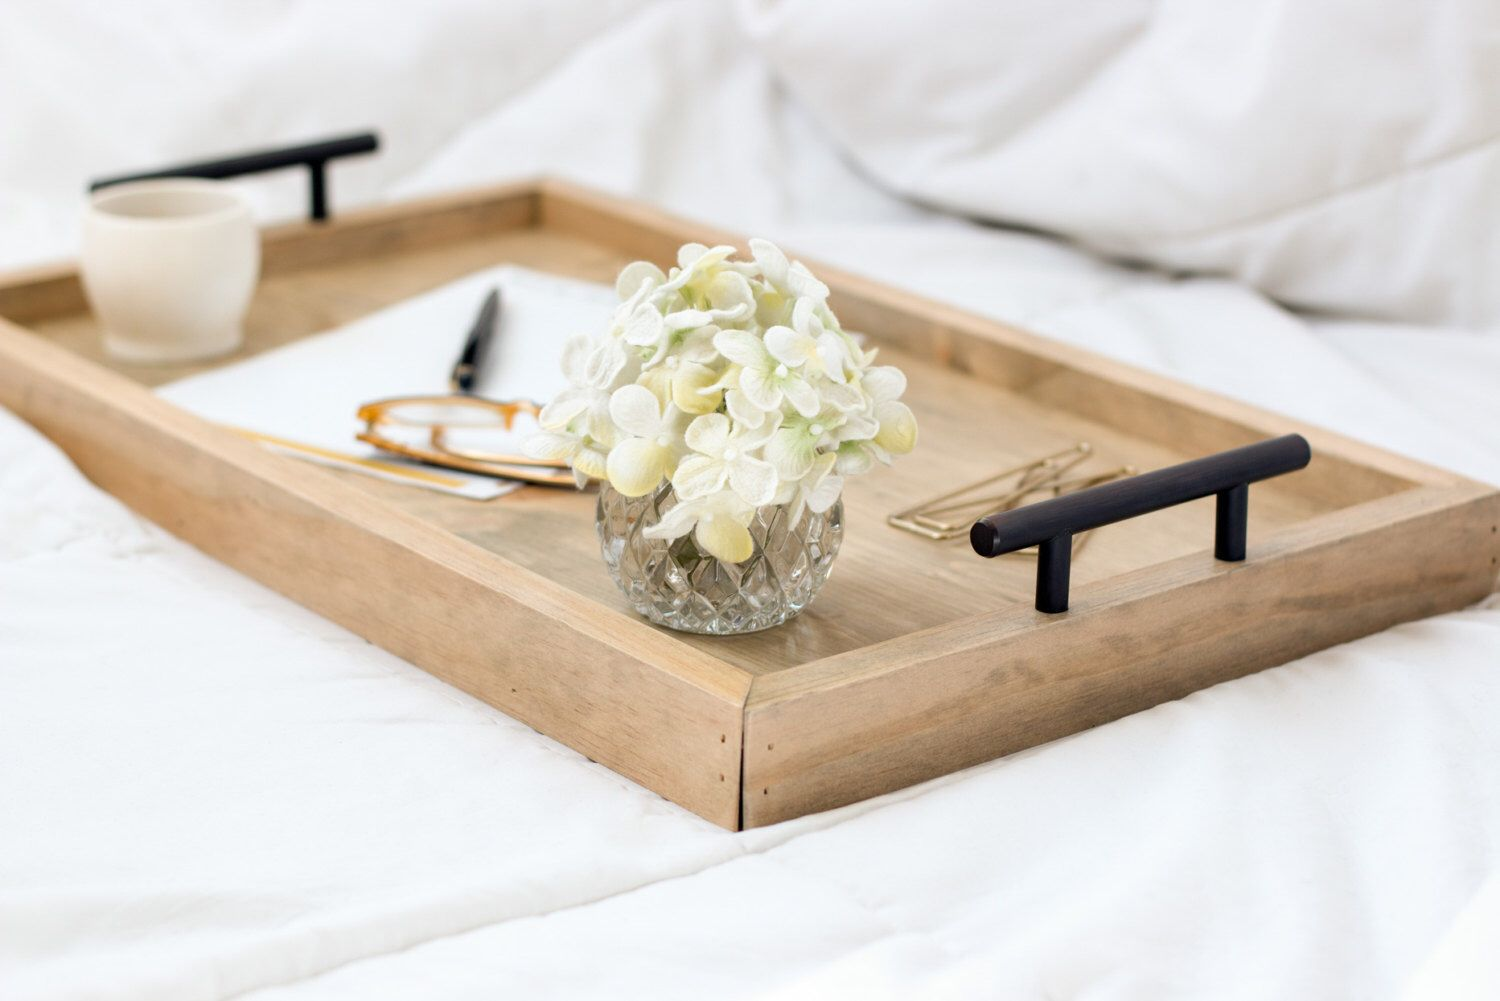 Breakfast Trays For Bed Unique Serving Tray Wood Serving Tray Breakfast Tray Housewarming Gift Review